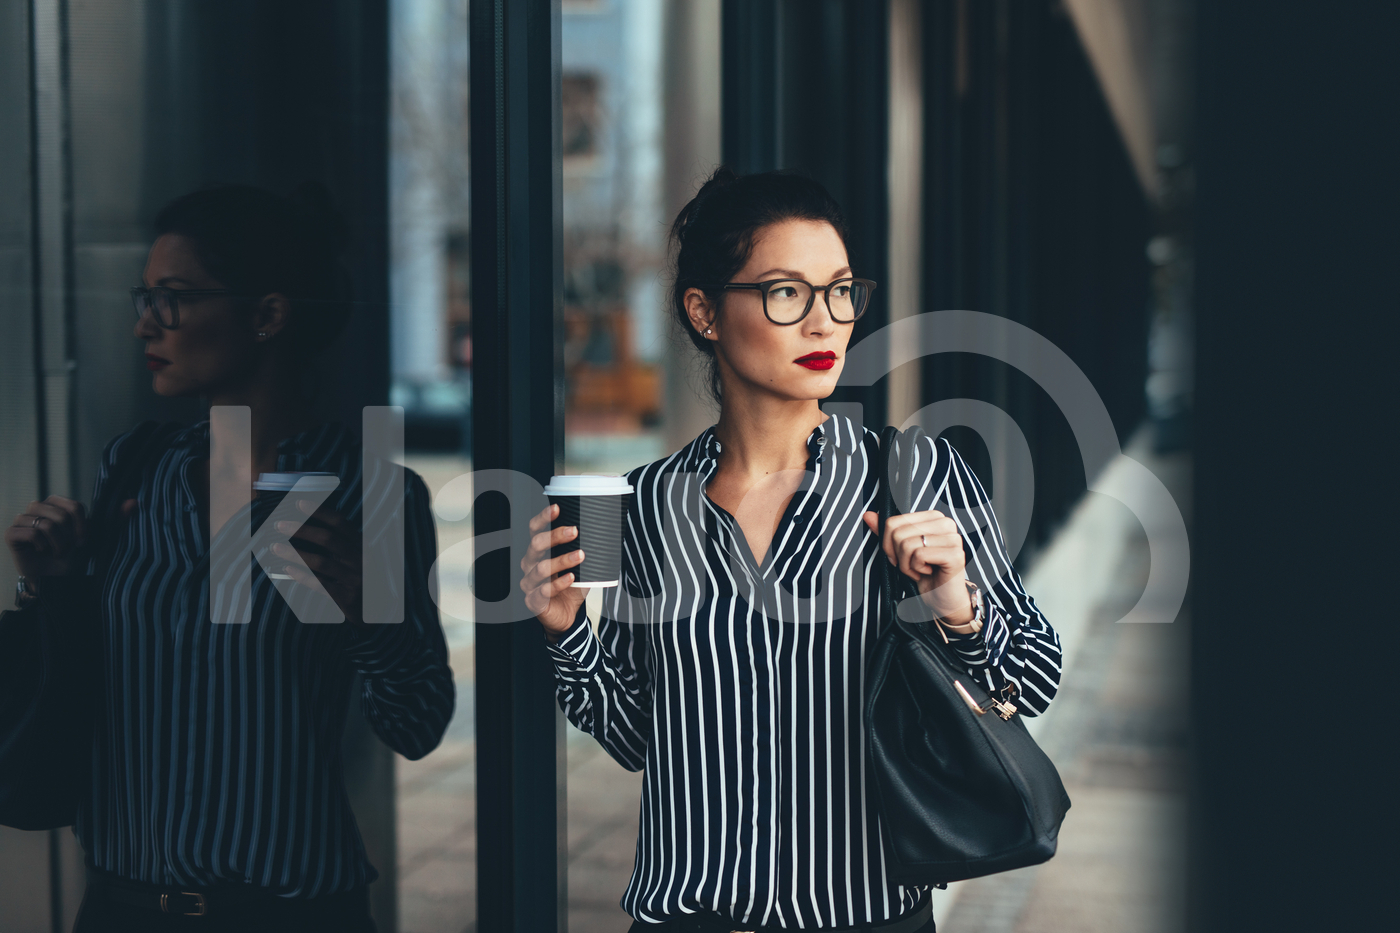 Businesswoman outside office building with a coffee